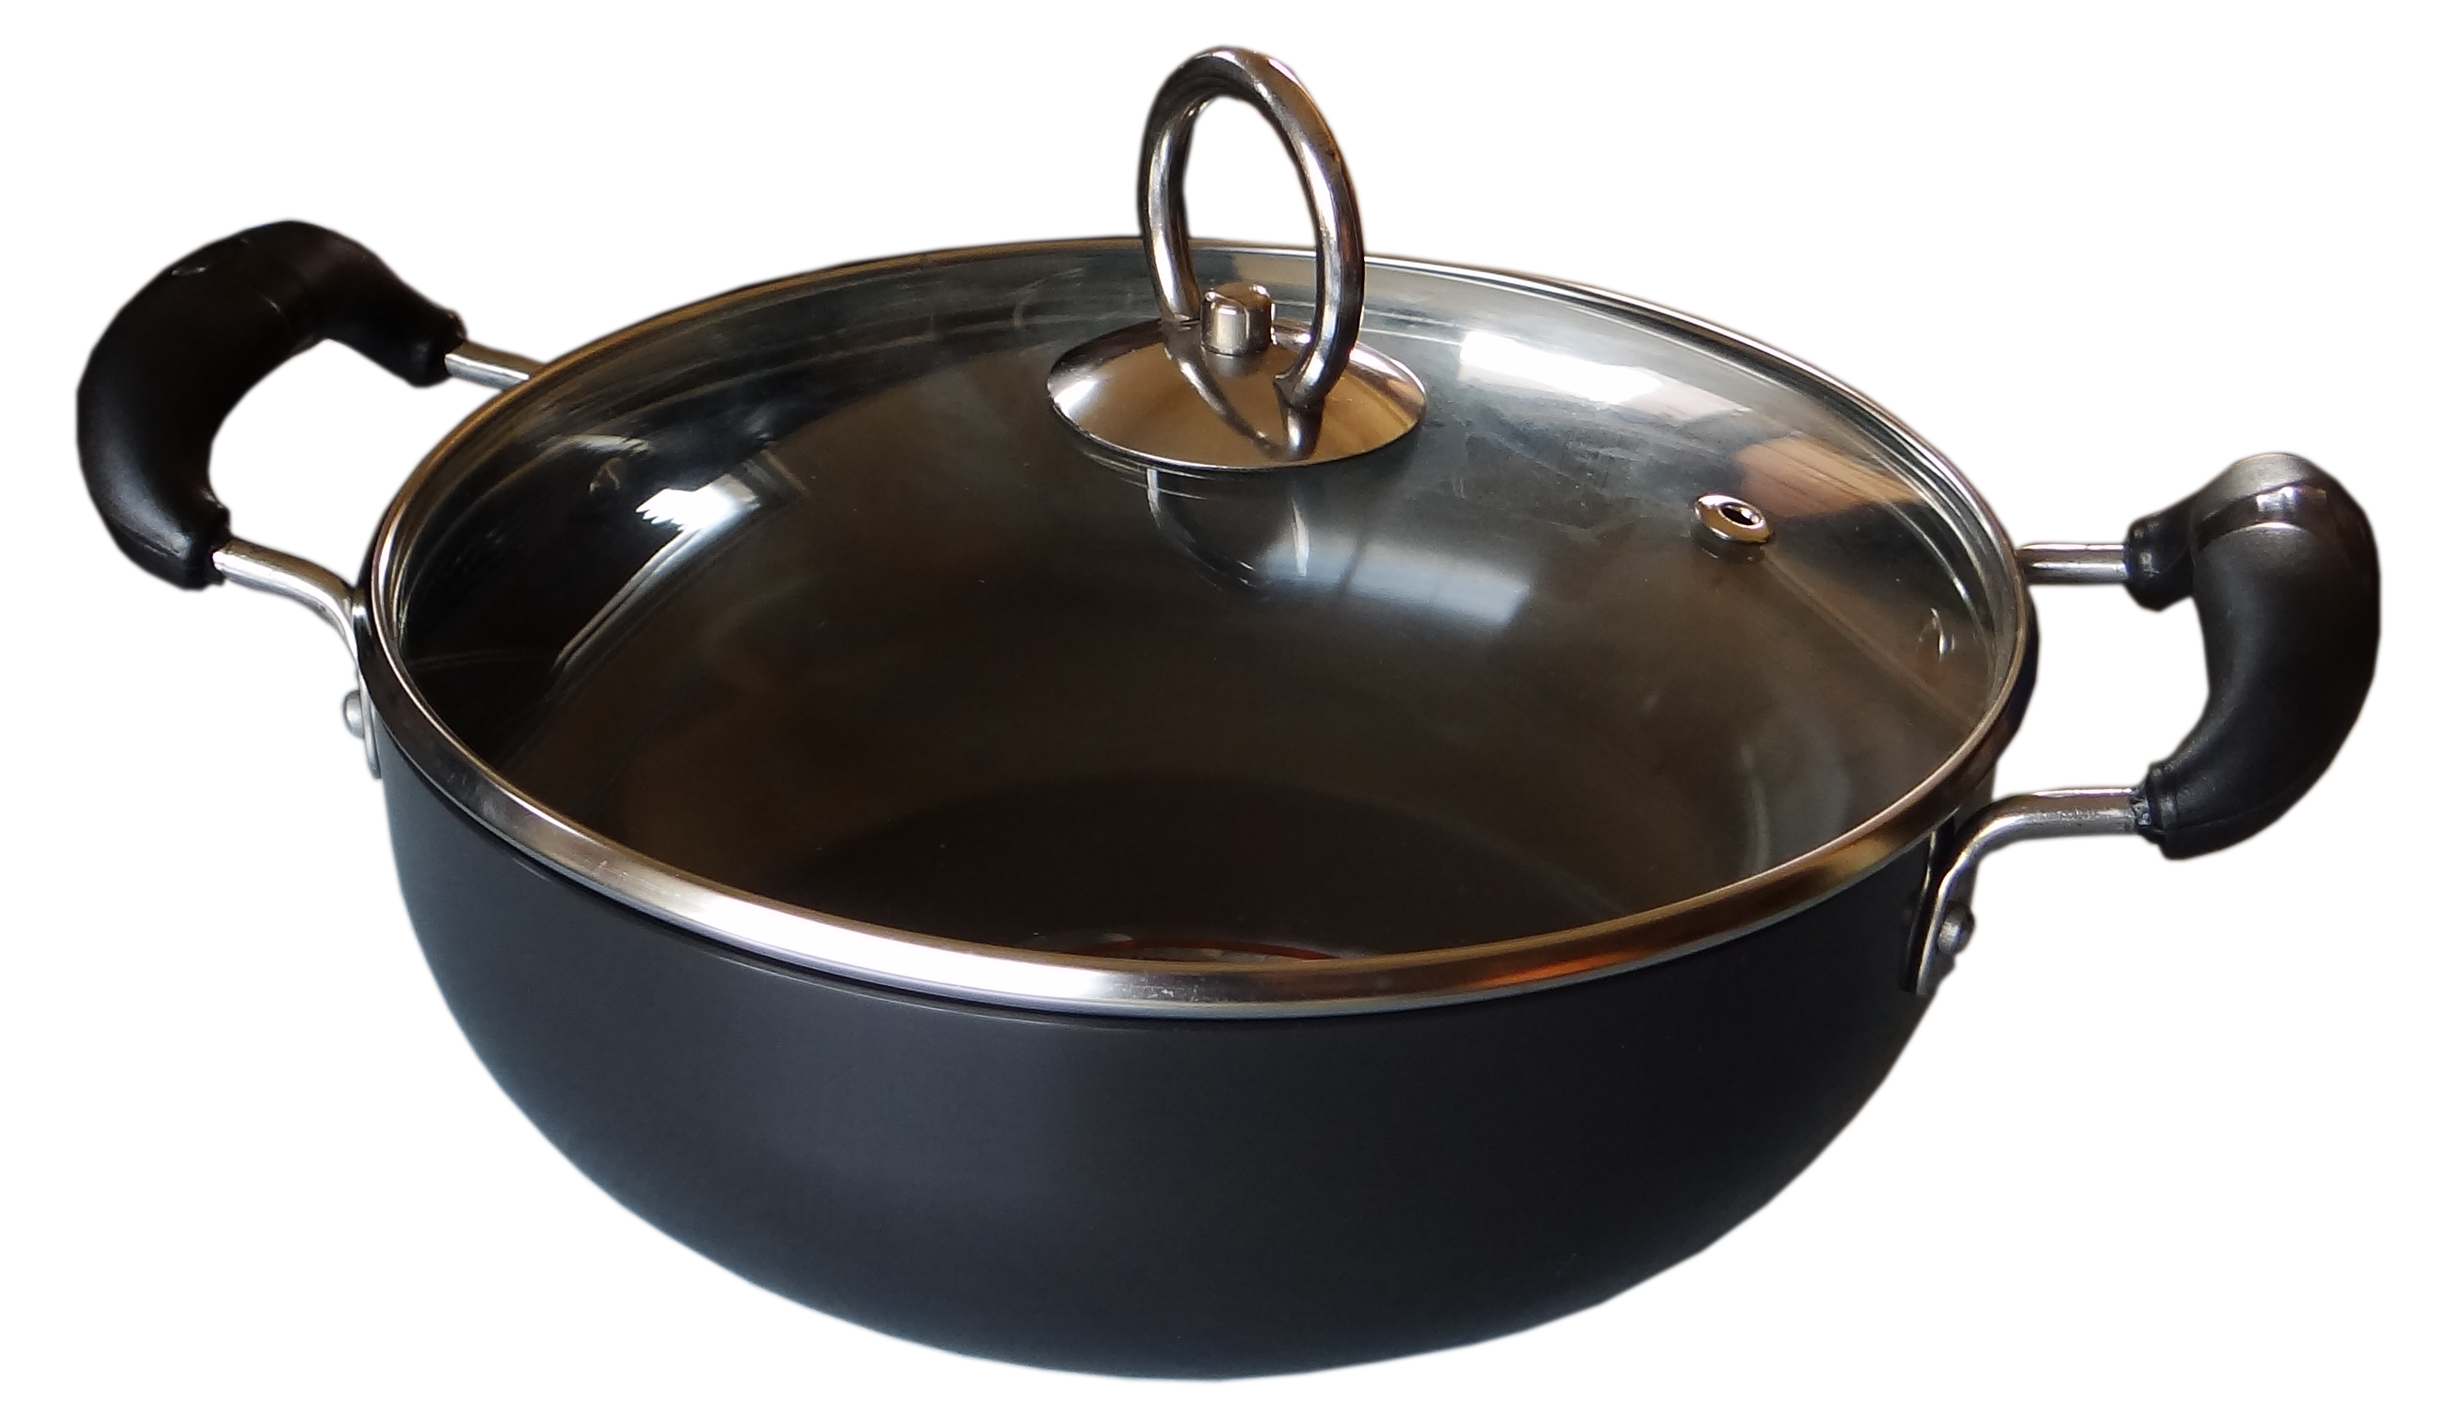 Metallino Fusion Nonstick Deep Kadai Glass Lid 2.5L